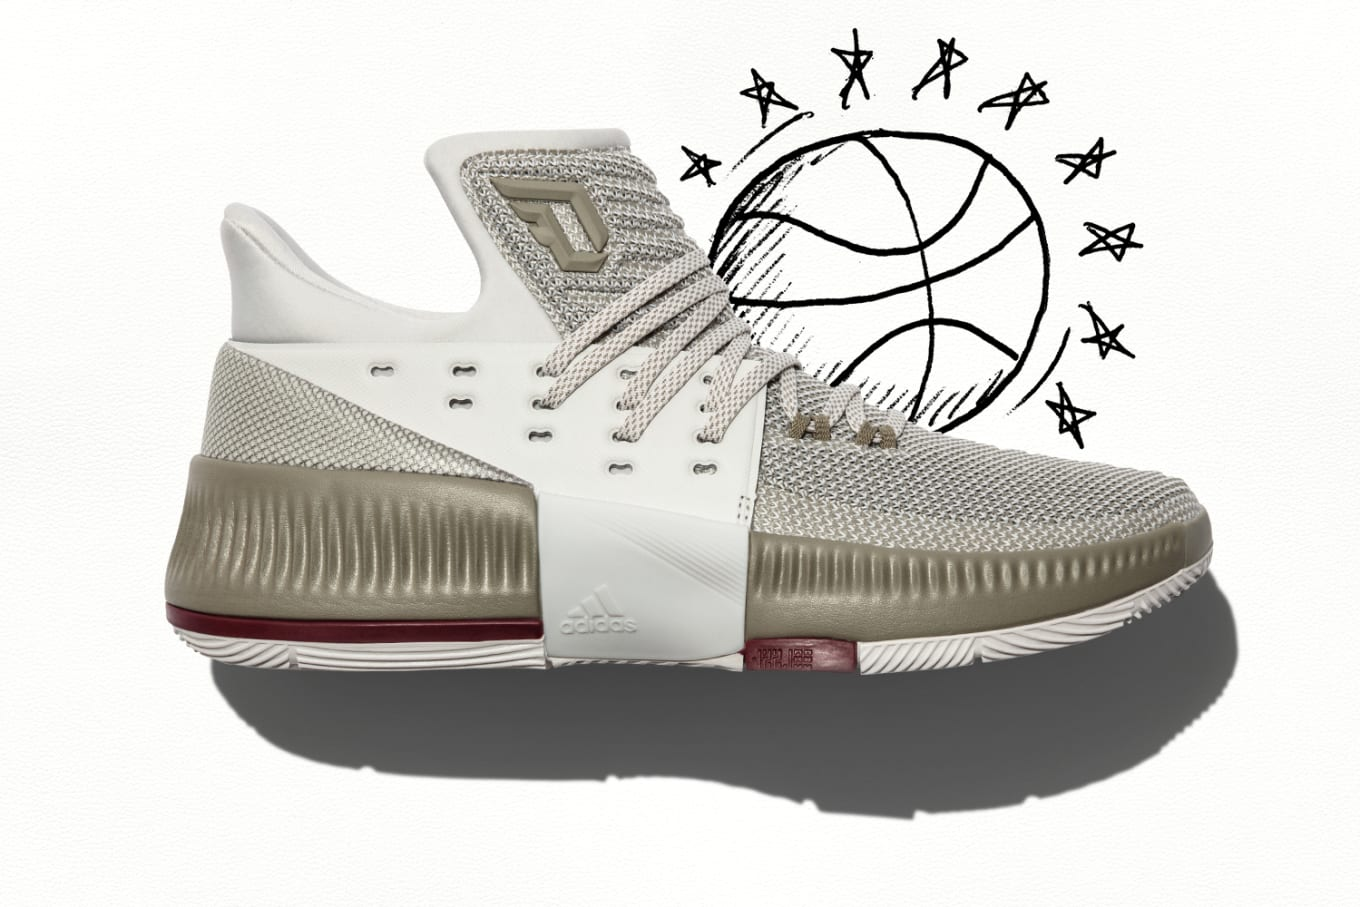 811d949b057cd7 Adidas Gives Damian Lillard Sneakers to Celebrate His Humble Beginnings.